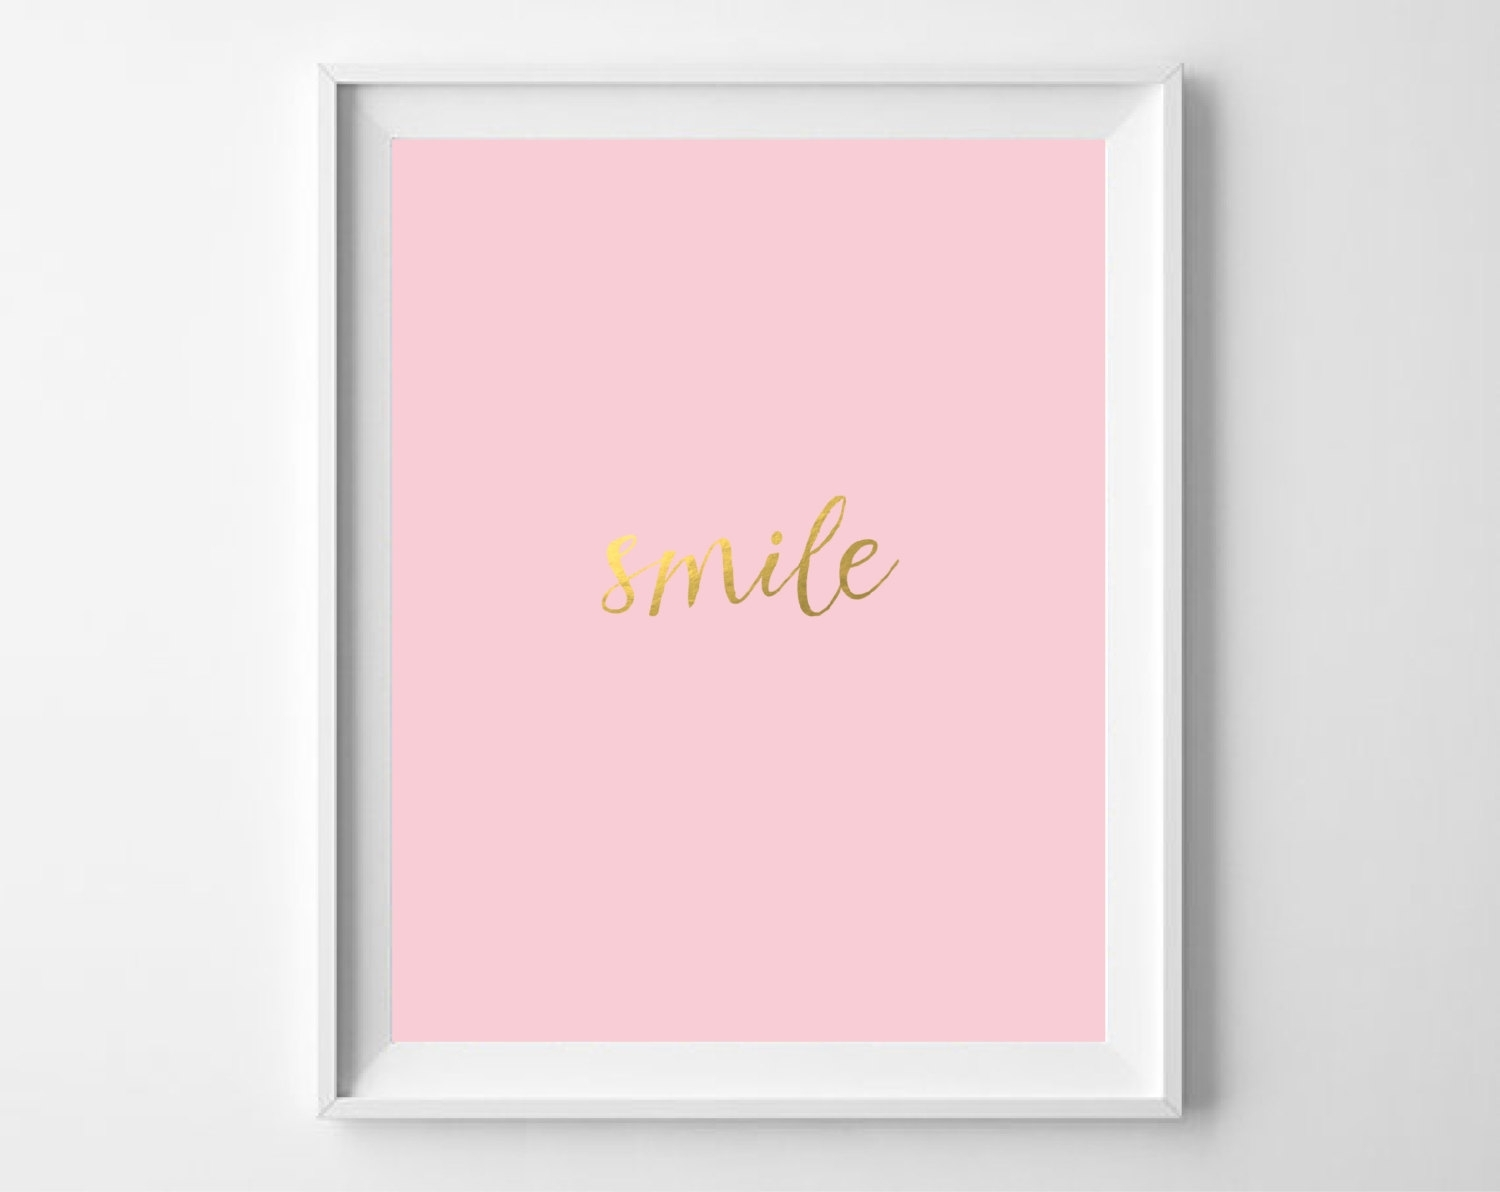 Smile Gold Foil Print Printable Blush Pink Gold Wall Art | Etsy With Regard To Most Current Gold Foil Wall Art (View 18 of 20)